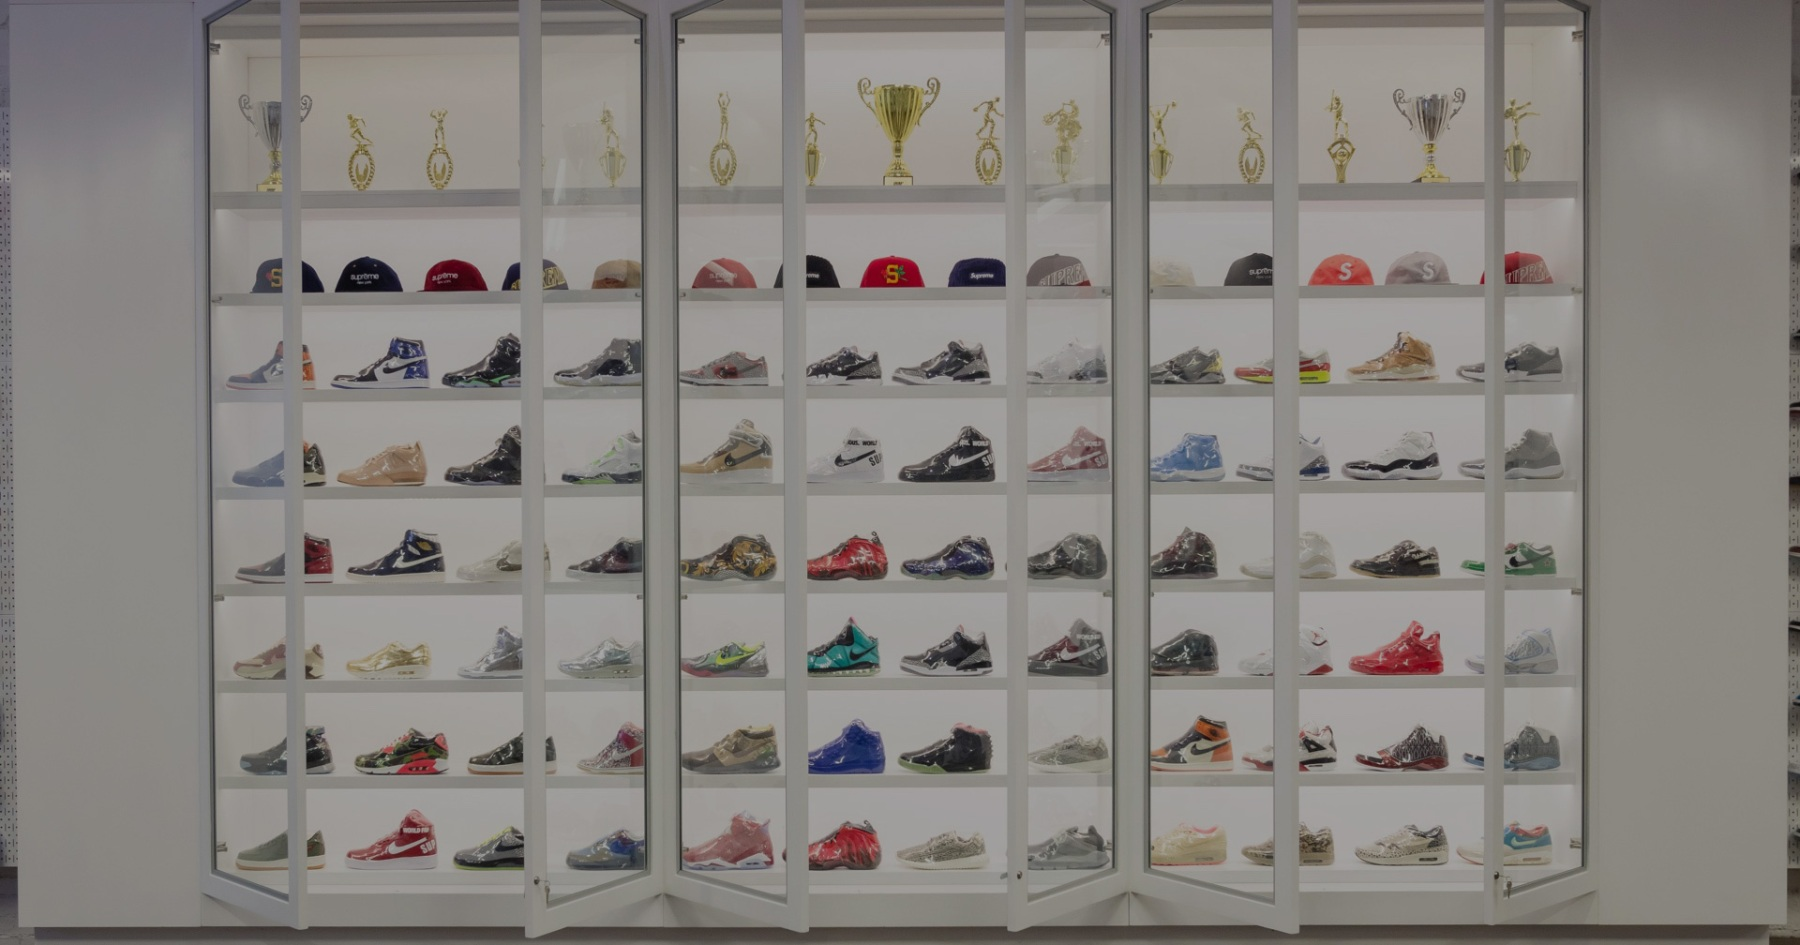 98b3bec93616e The Greatest Sneaker Collection in the World